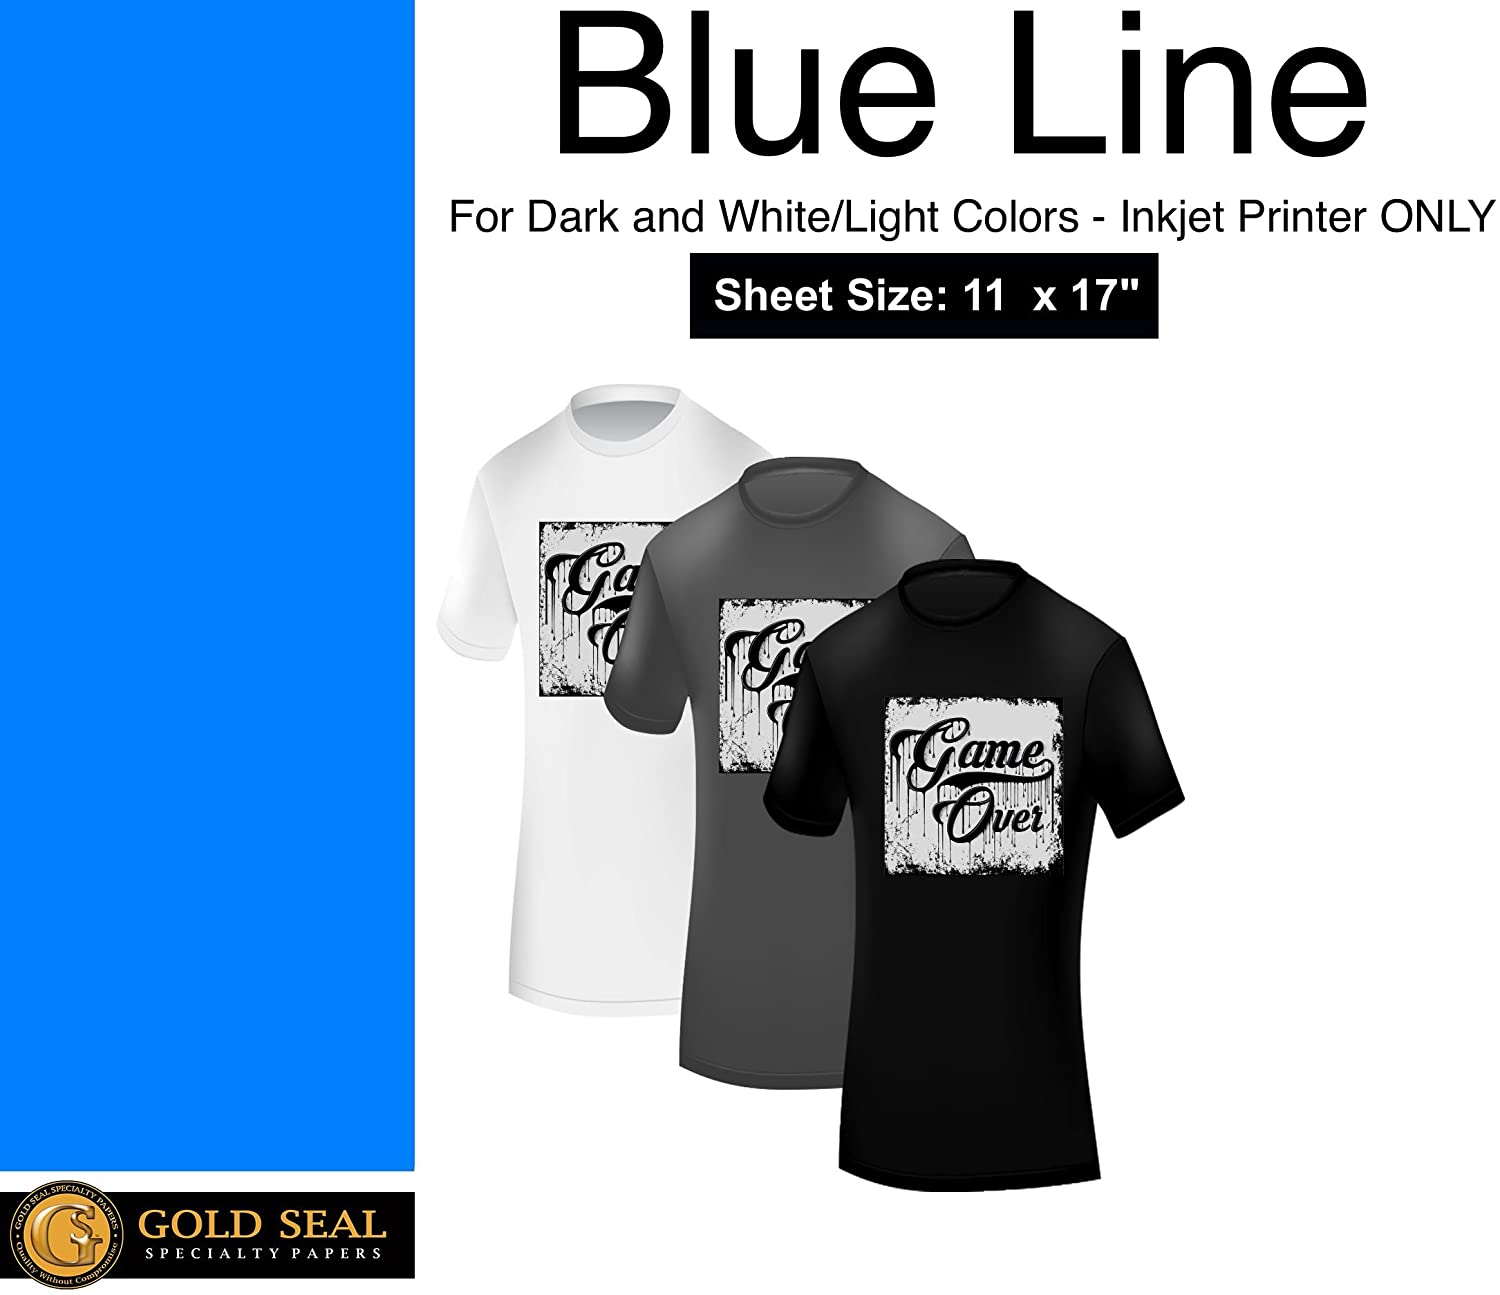 Blue Line Dark Iron On Heat Transfer Paper for Inkjet 11 x 17-55 Sheets